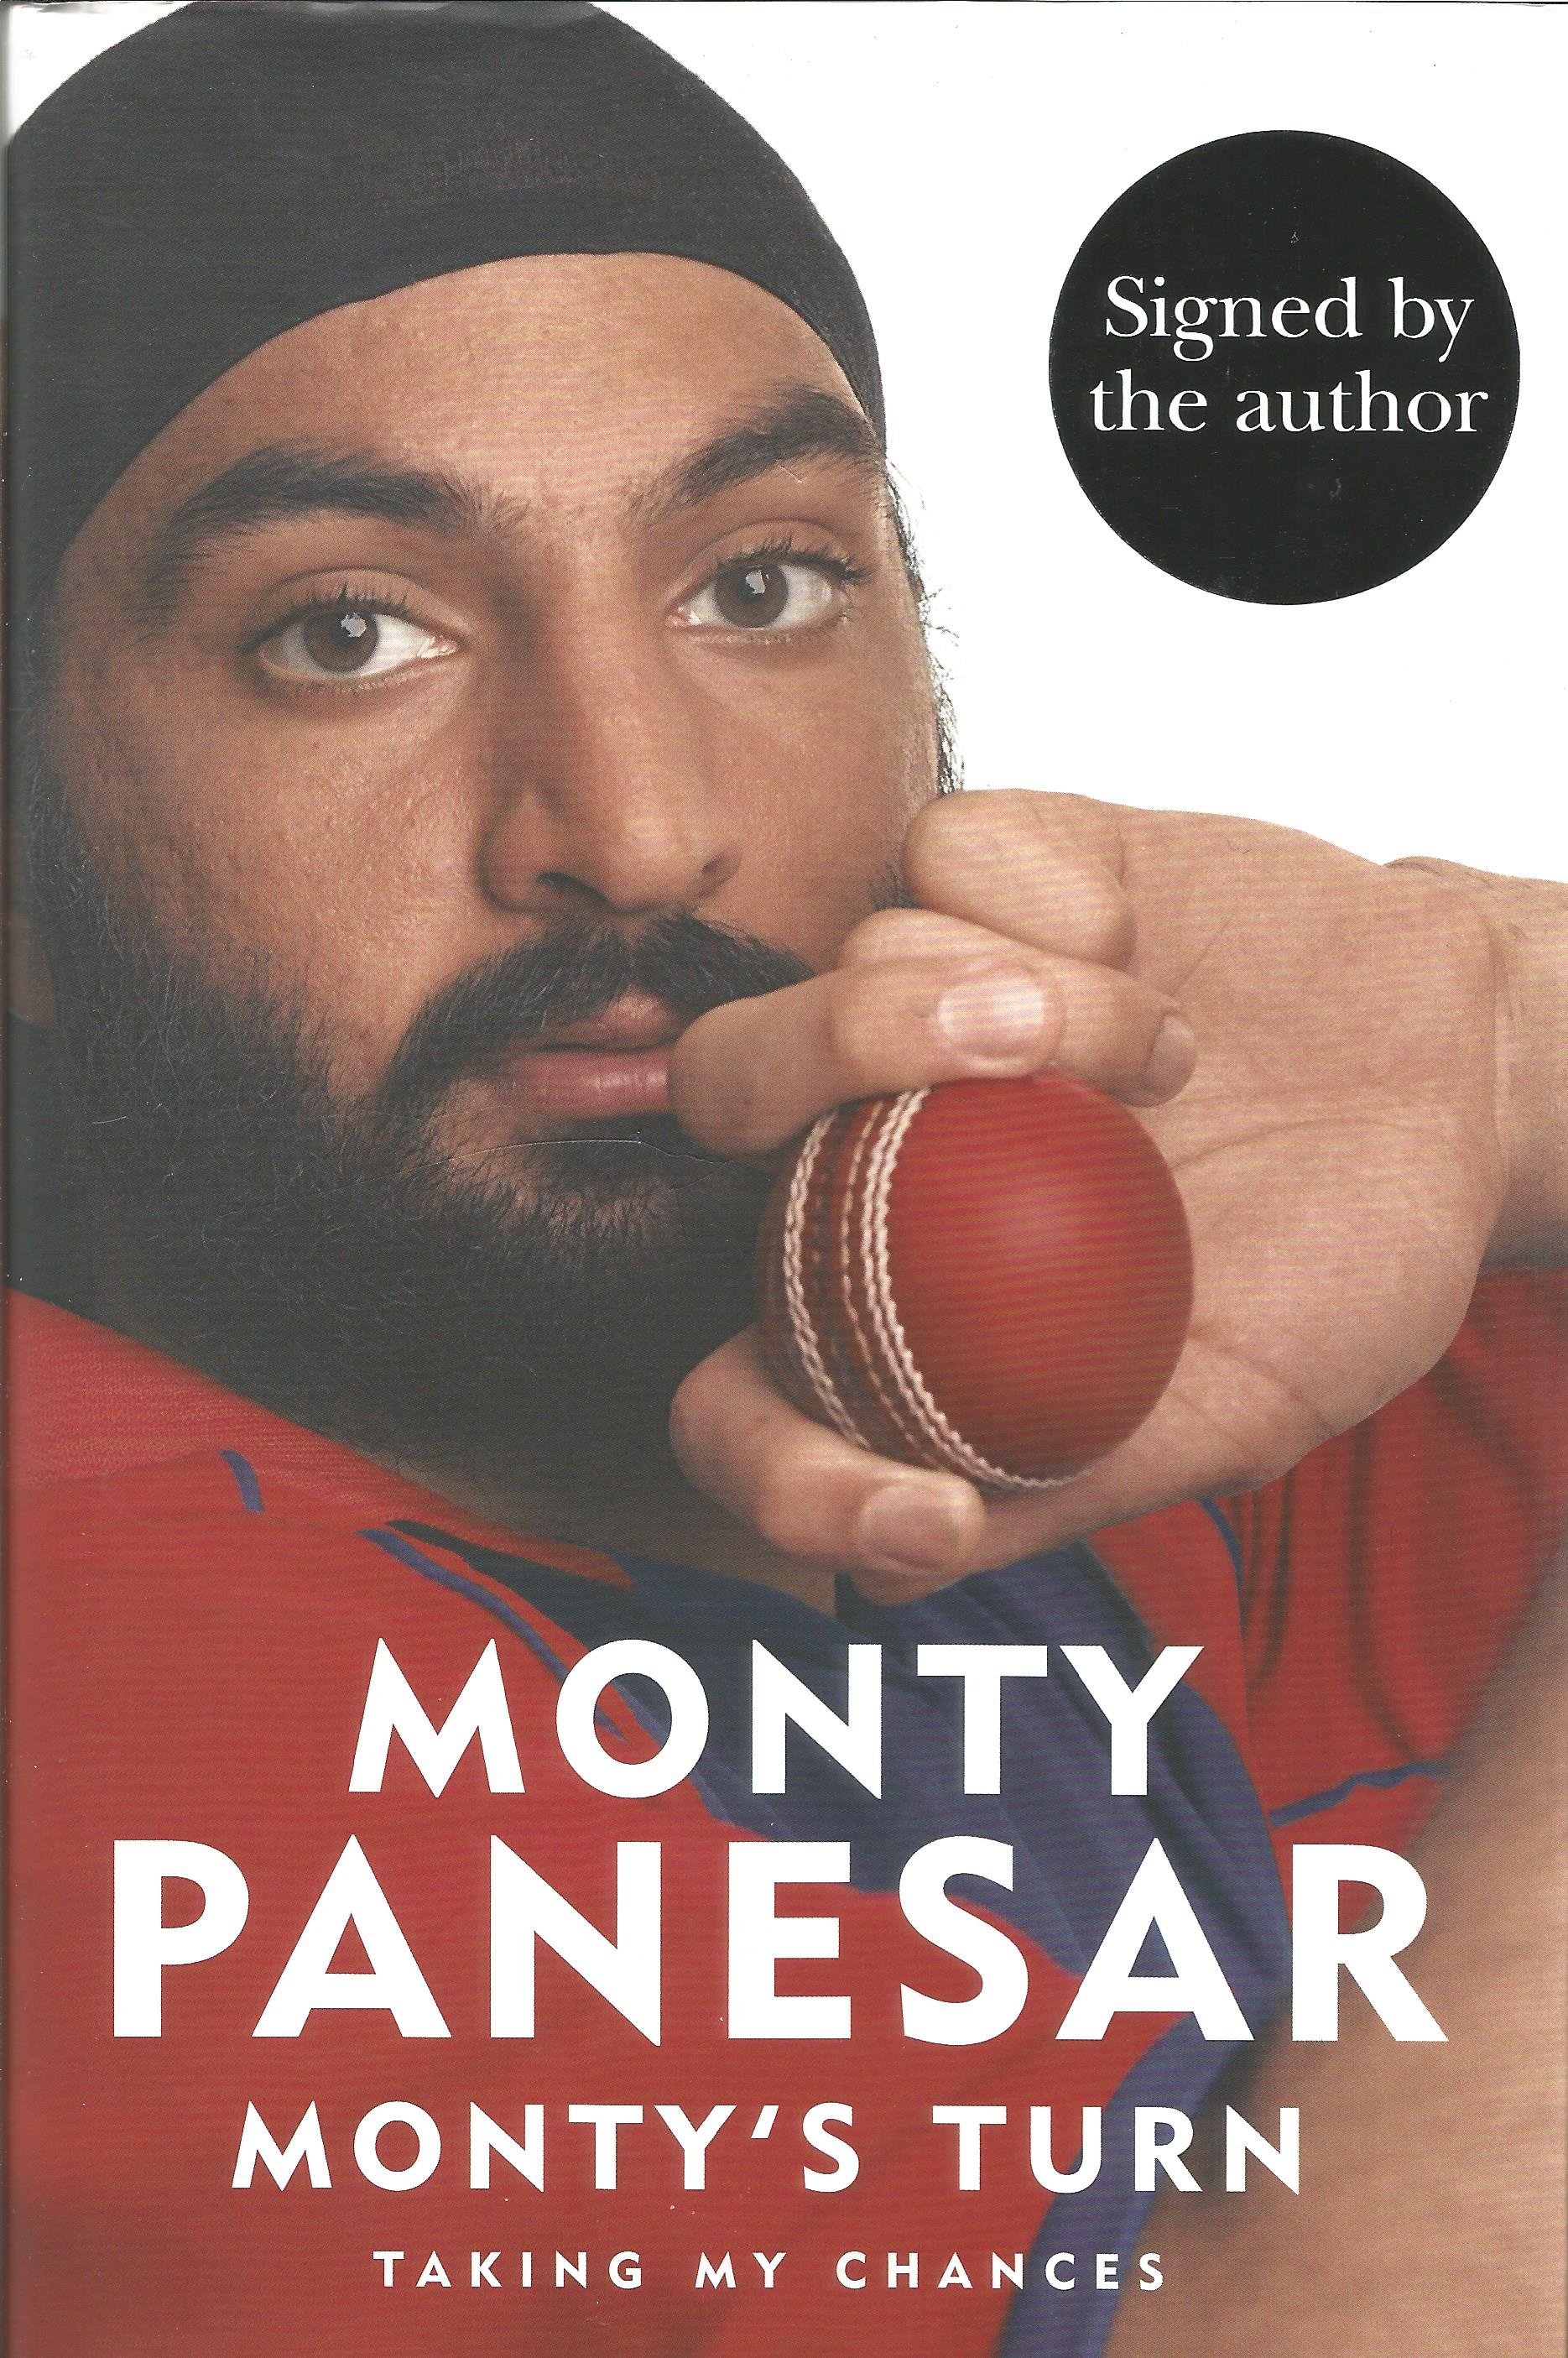 Lot 59 - Cricket Monty Panesar signed hard back book Monty's Turn, Taking My Chances. Dust cover. Signed on